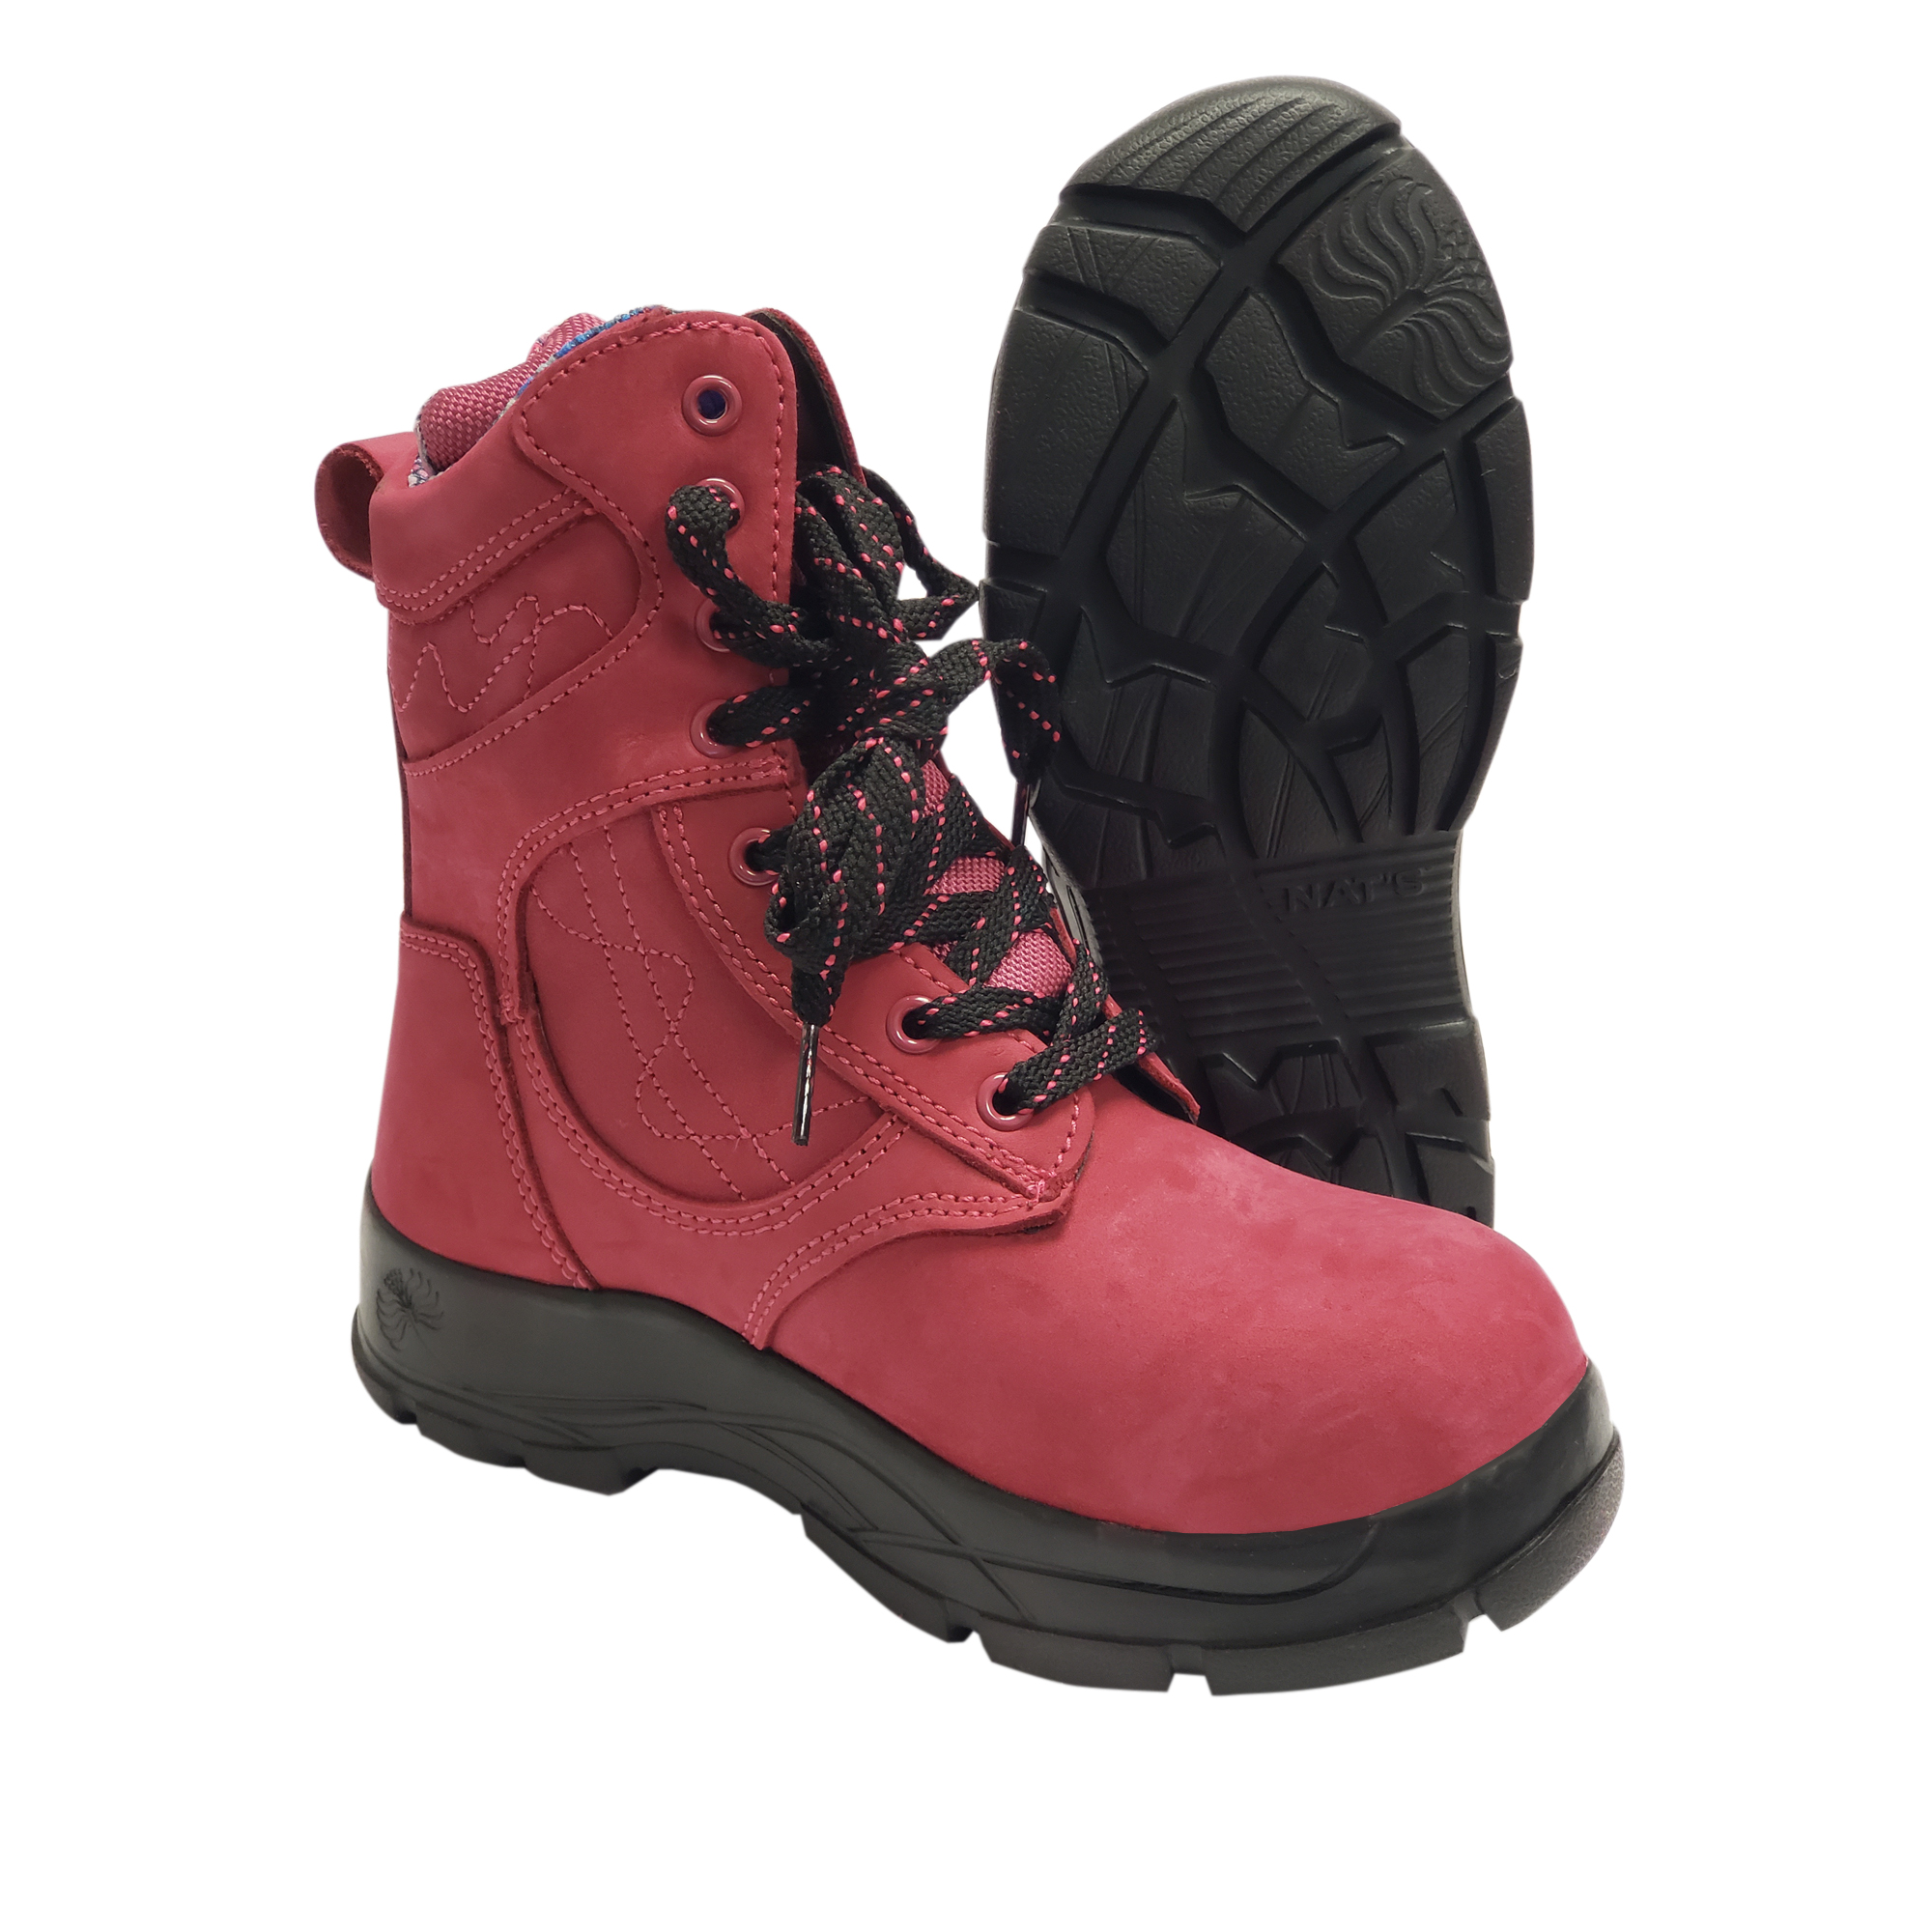 new style b6958 aae9a 8-Inch Ultra Light Work Boot with Steel Toe, Raspberry